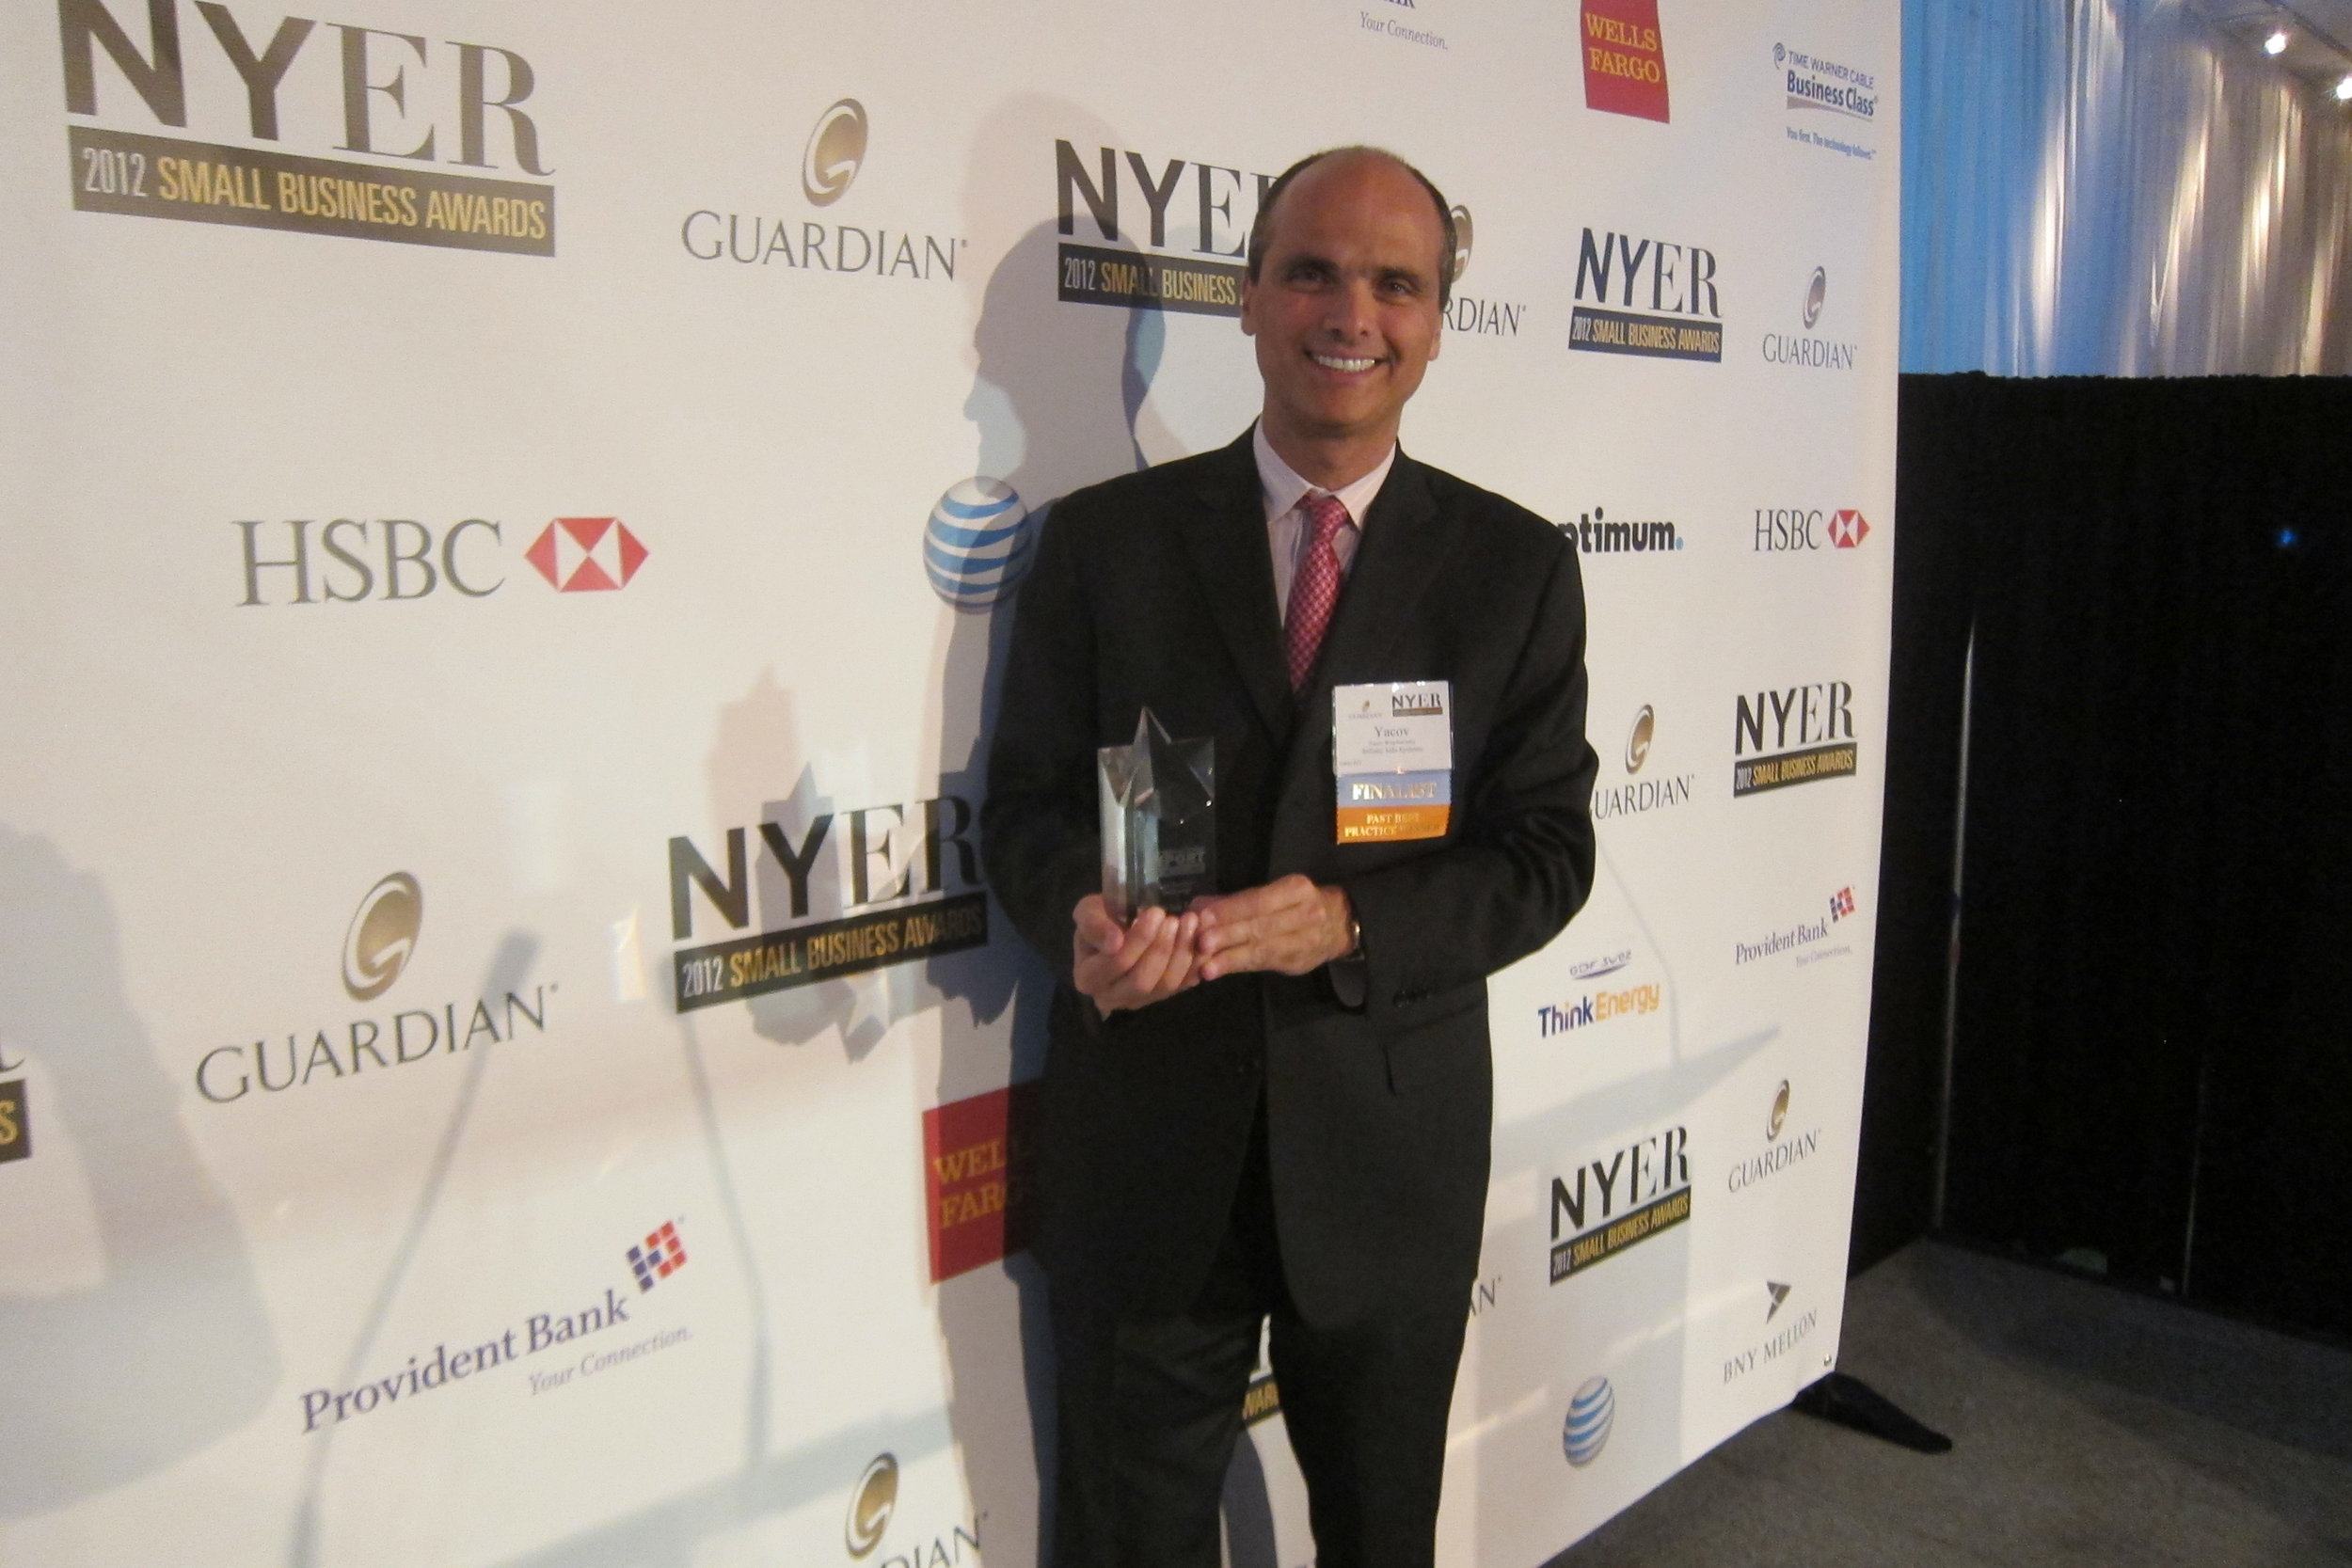 2006 - Awarded Best Practices in Human Resources